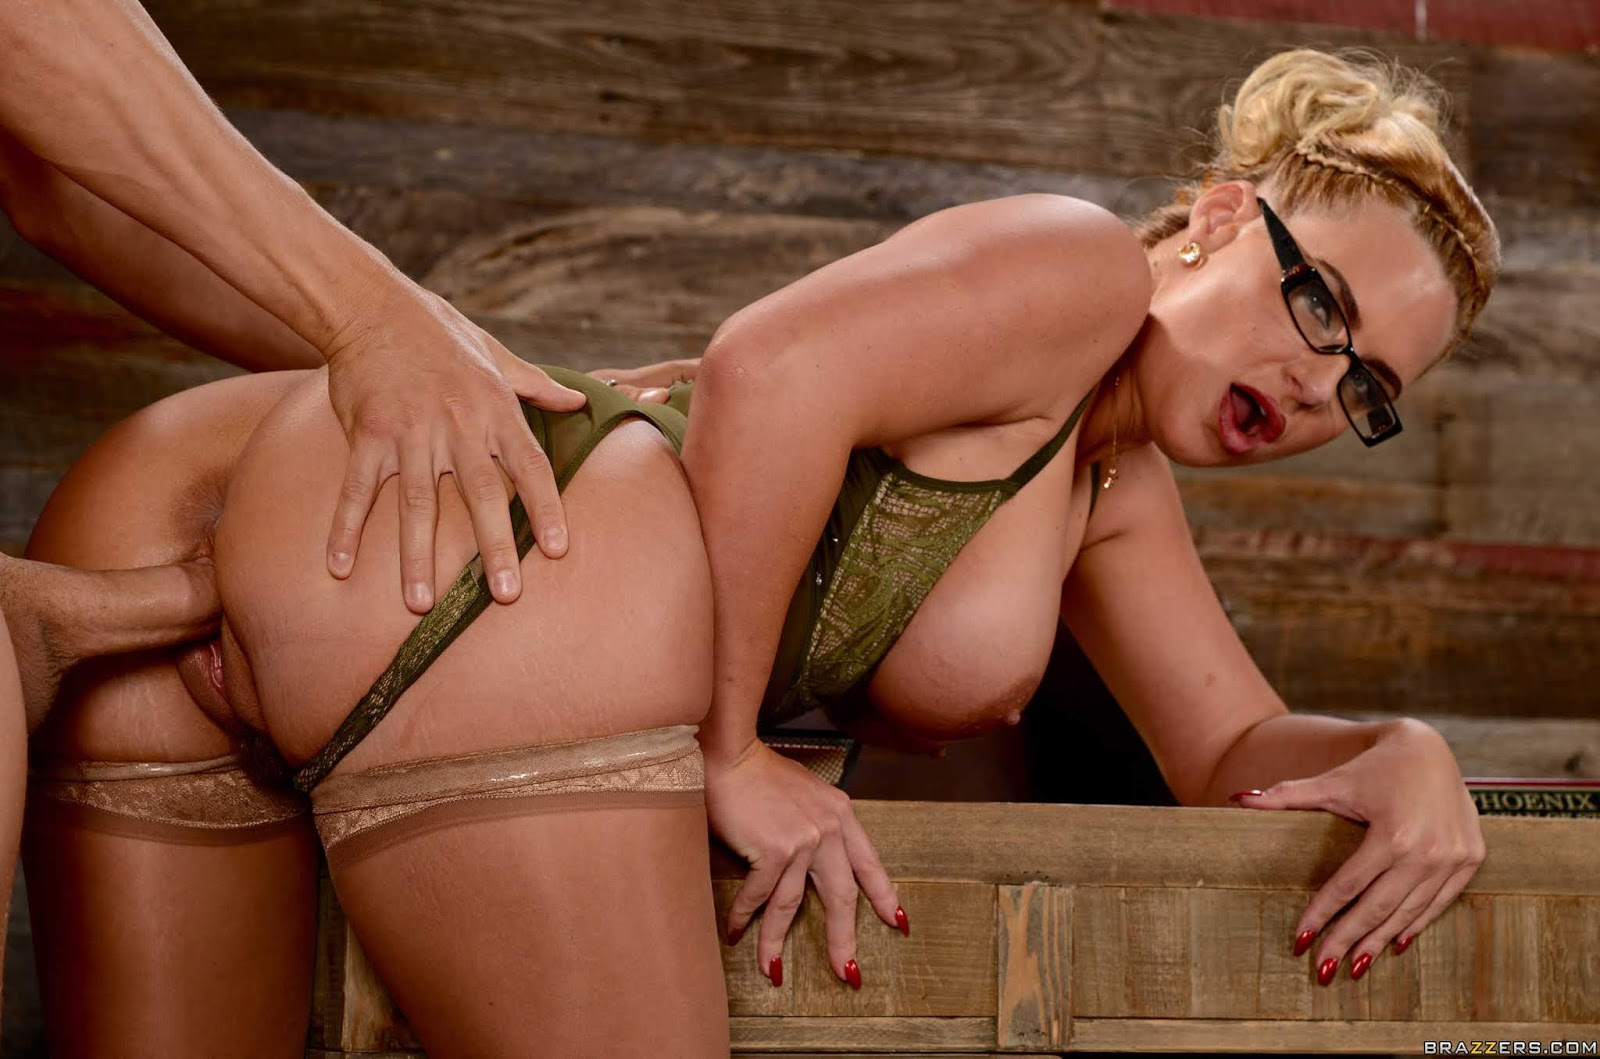 Horny blonde phoenix marie undresses to black leather boots on the bed for a penthouse shoot